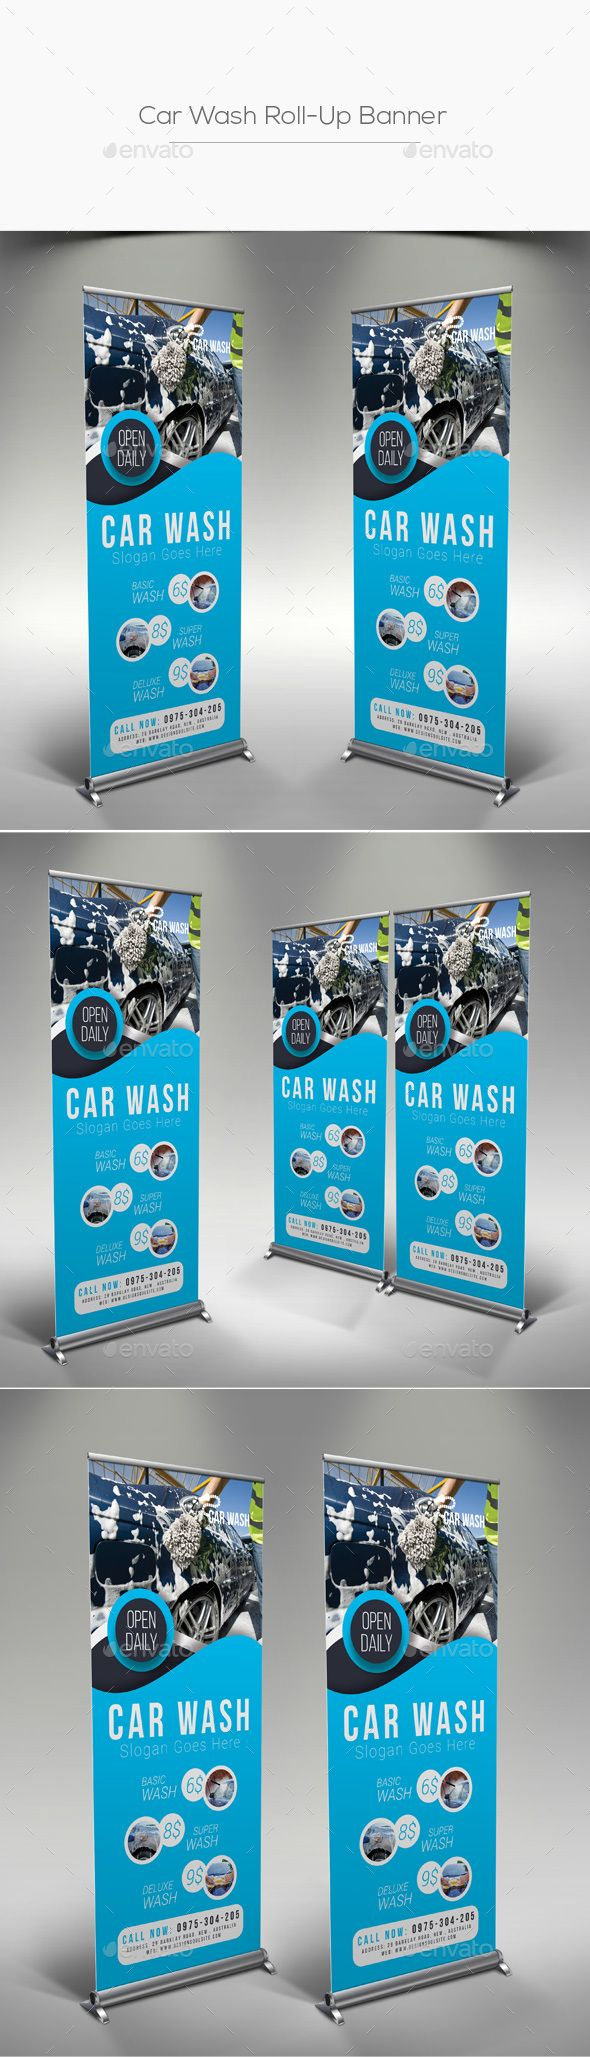 #Car #Wash #Roll-Up #Banner #Template - #Signage #Rollup #ads #banner #Print #de...